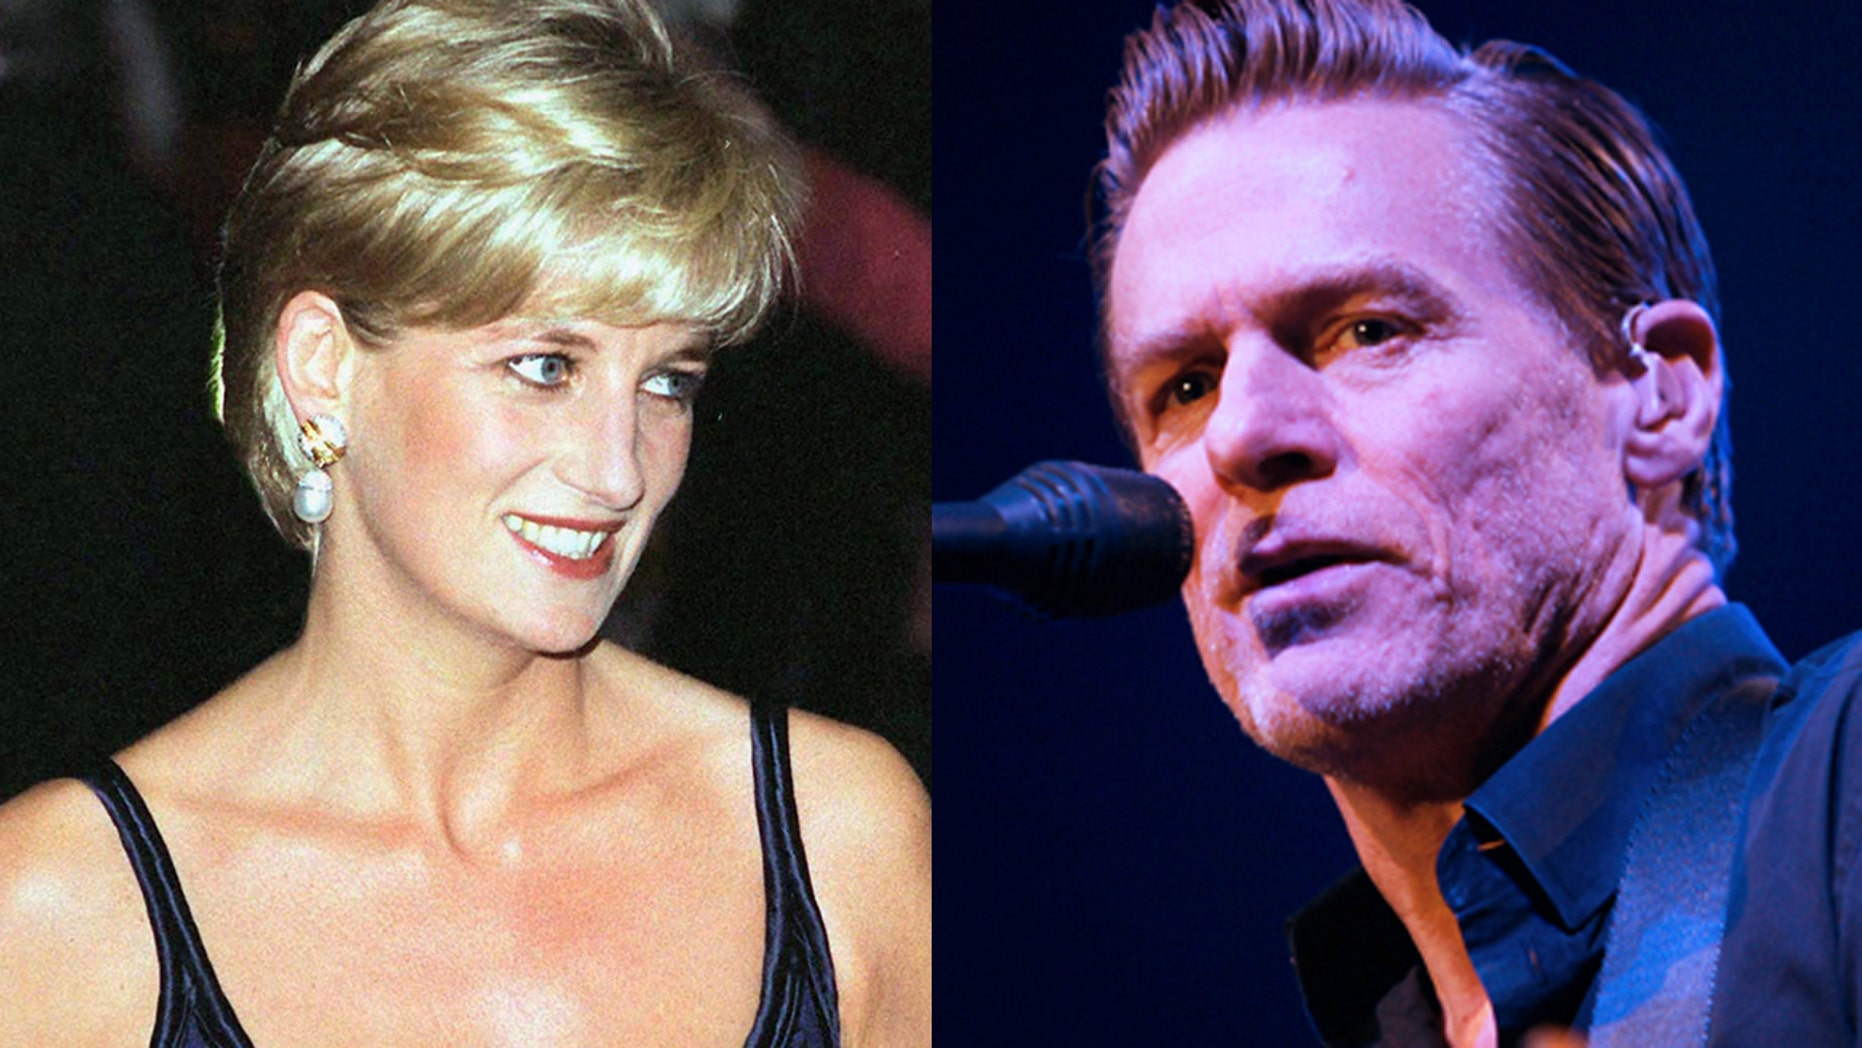 Singer Bryan Adams talks about the dating rumors between he and the late Princess Diana on Andy Cohen's Bravo talk show.